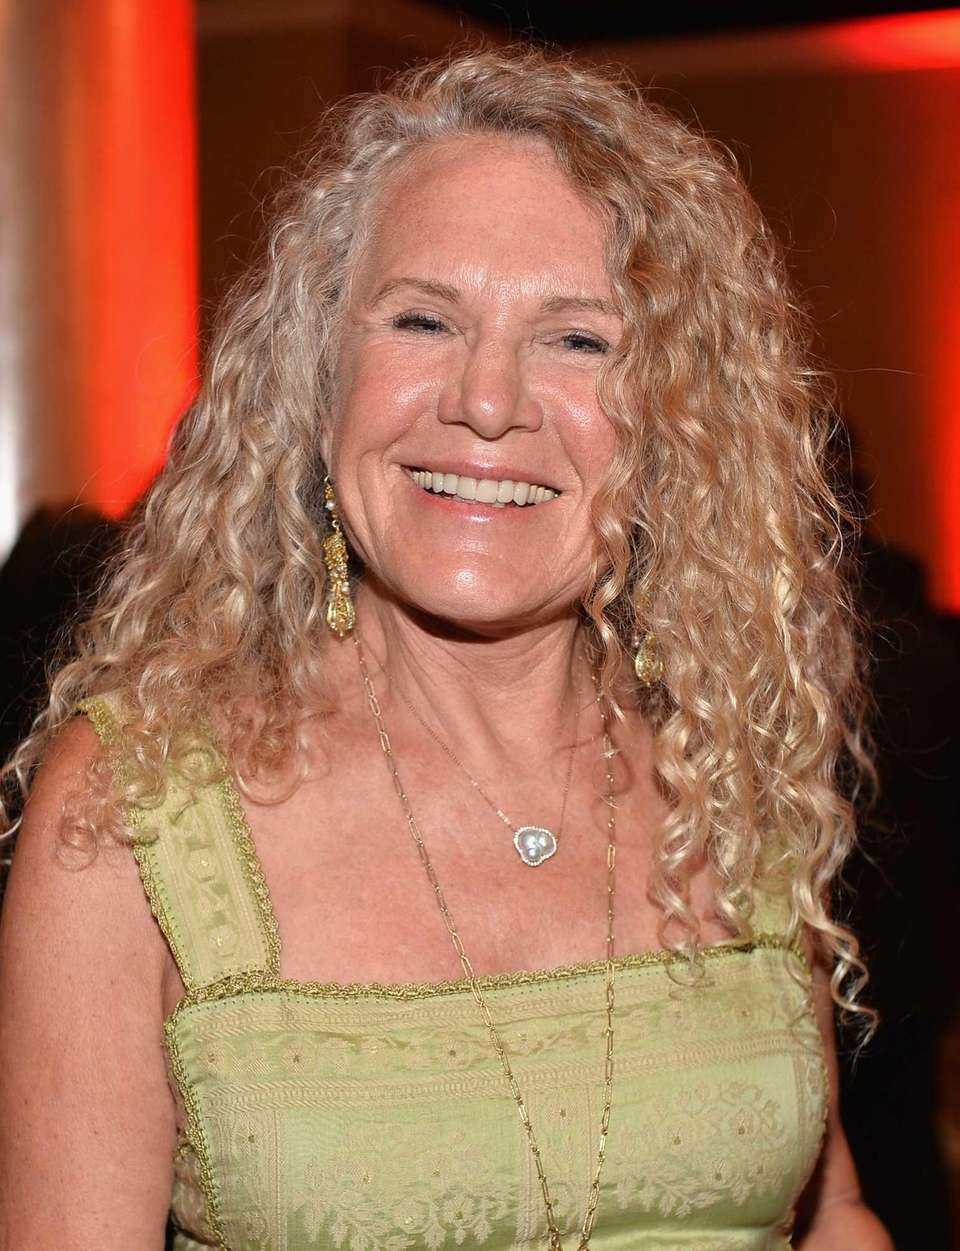 Christy Walton, who inherited her wealth from her